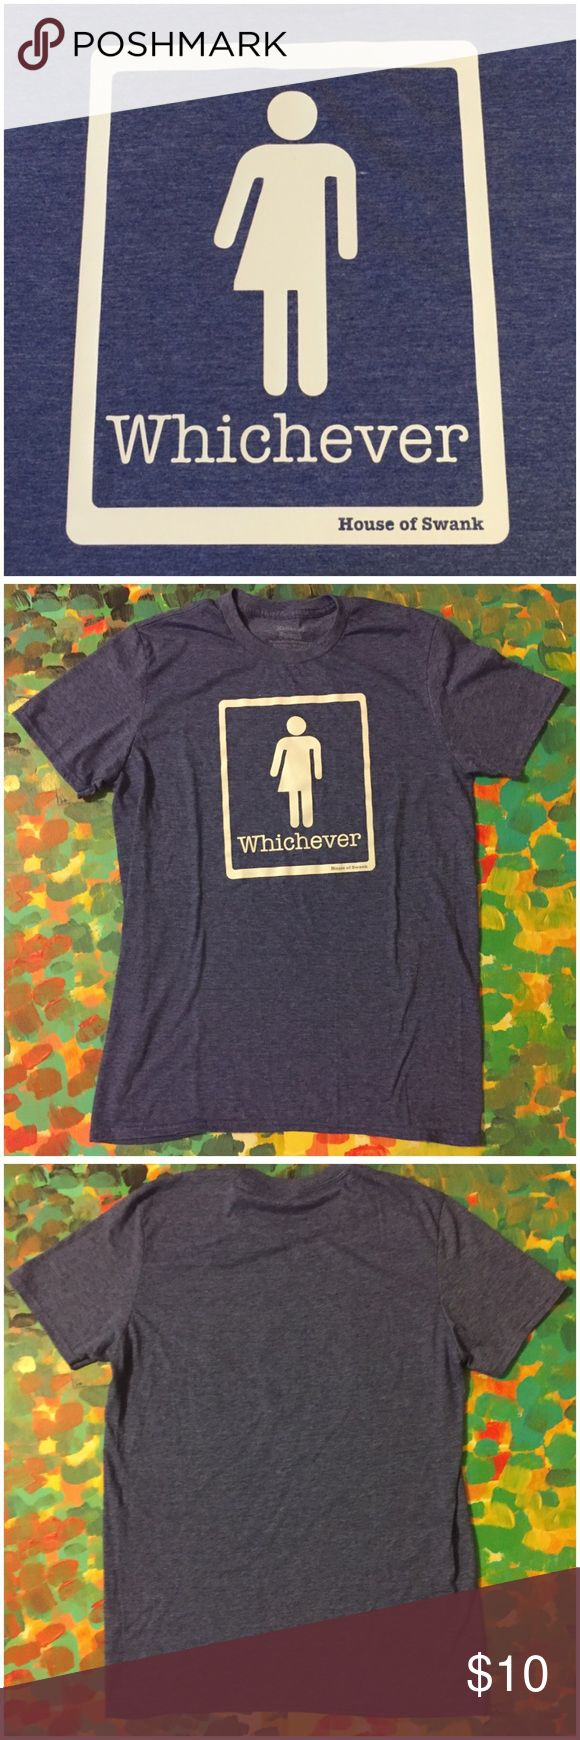 "NWOT Whichever Bathroom HB2 Law Protest Tee Shirt NWOT Whichever Bathroom HB2 Law Protest Tee Shirt by House of Swank --- Who cares what bathroom you use? --- gender neutral tee --- unisex size medium --- 65% polyester 35% cotton --- heather blue/purple, Color is the most accurate in the first picture --- preshrunk --- 20"" bust --- 28"" length --- fabric has stretch --- new without tags --- thank you for visiting my boutique, please feel free to ask any questions House of Swank Tops Tees…"